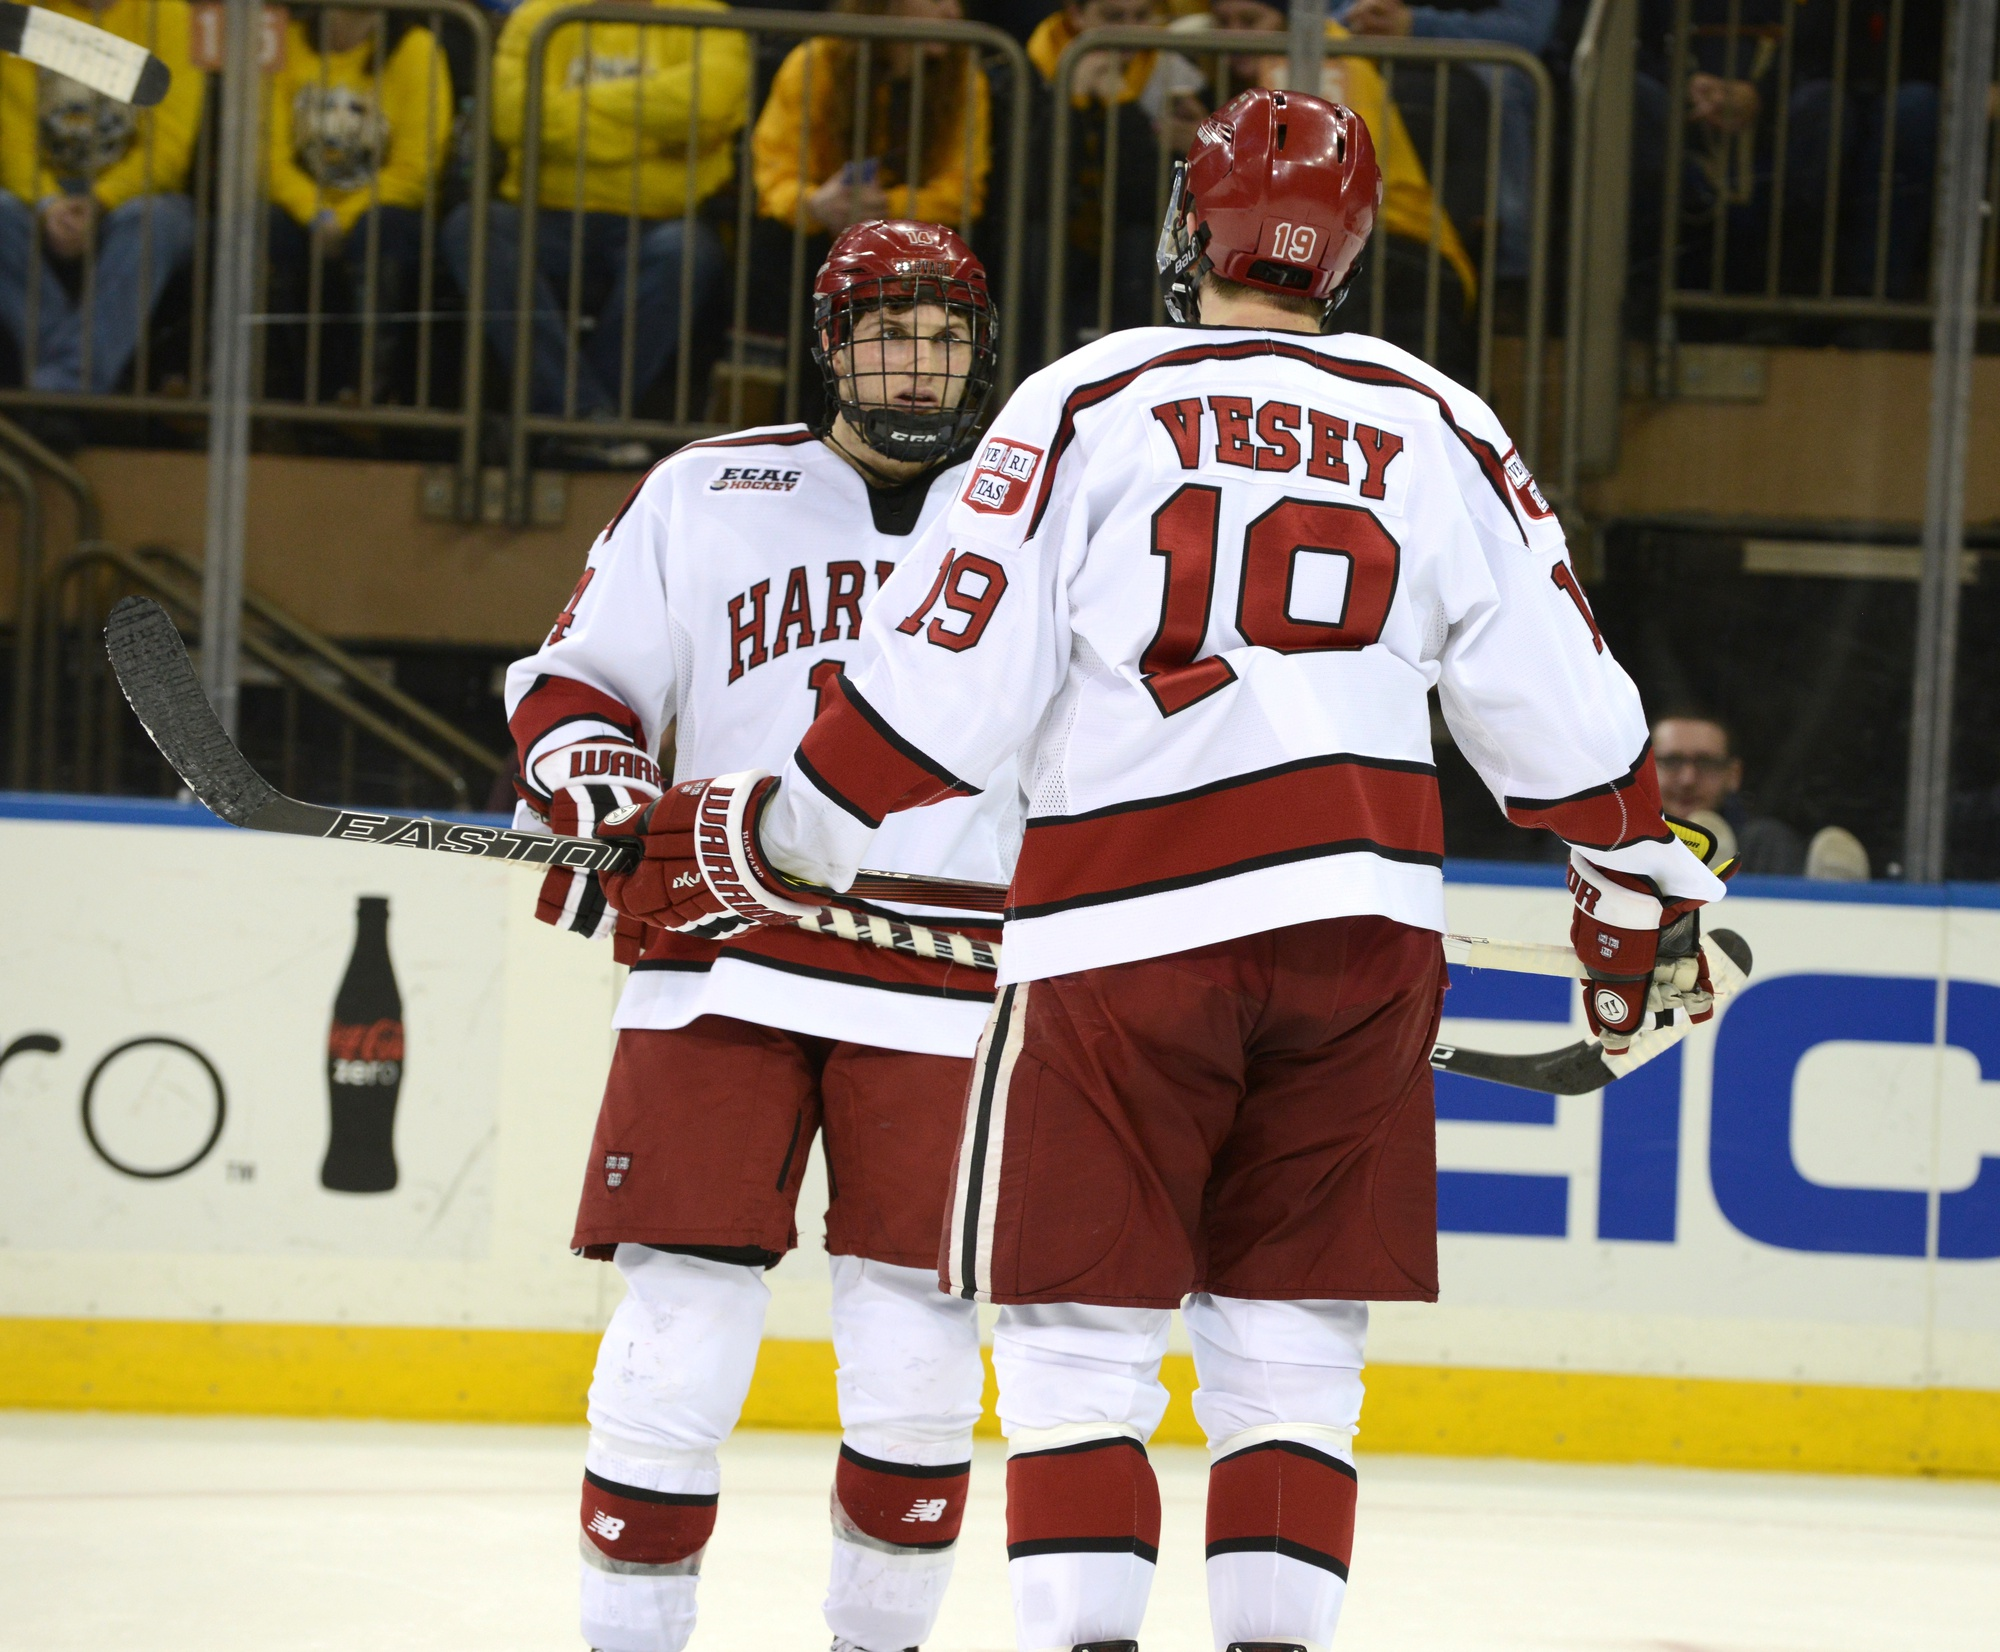 Alexander Kerfoot (left) and Devin Tringale will become Harvard's next two captains, filling the spots of Jimmy Vesey (right) and Kyle Criscuolo.